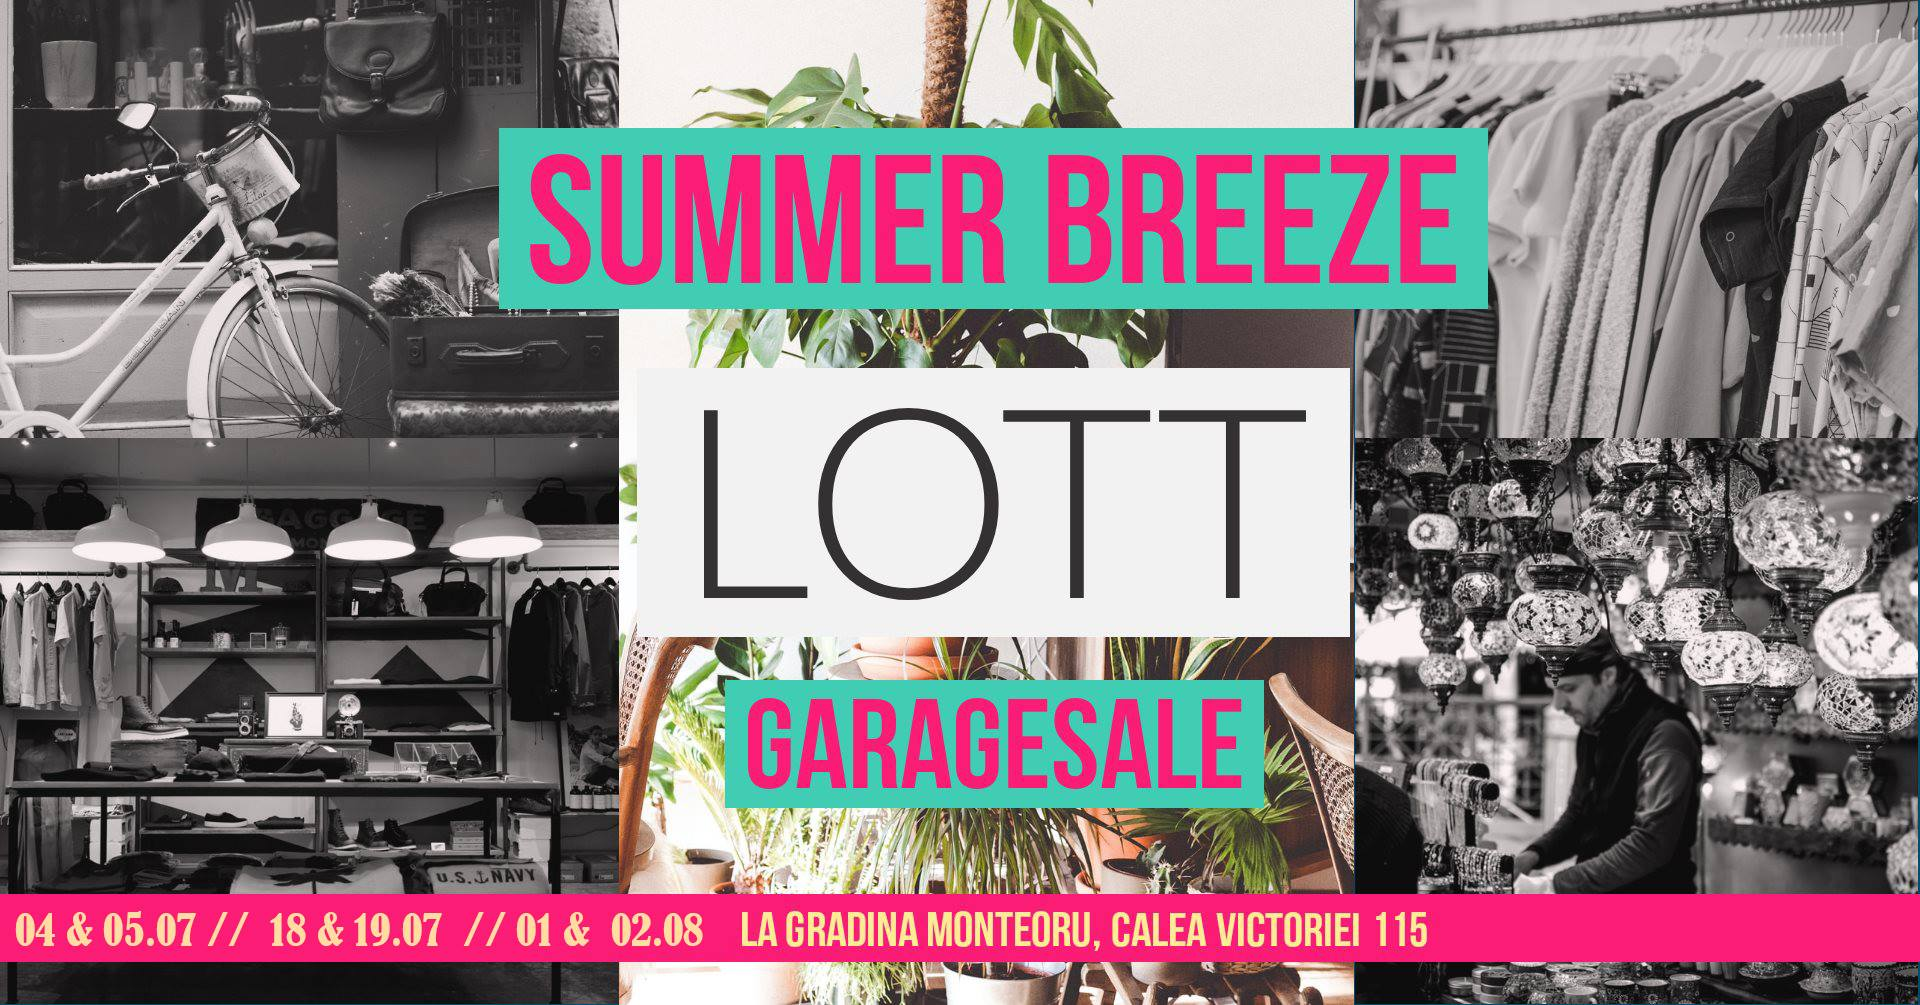 weekend 3-5 iulie garage sale la monteoru